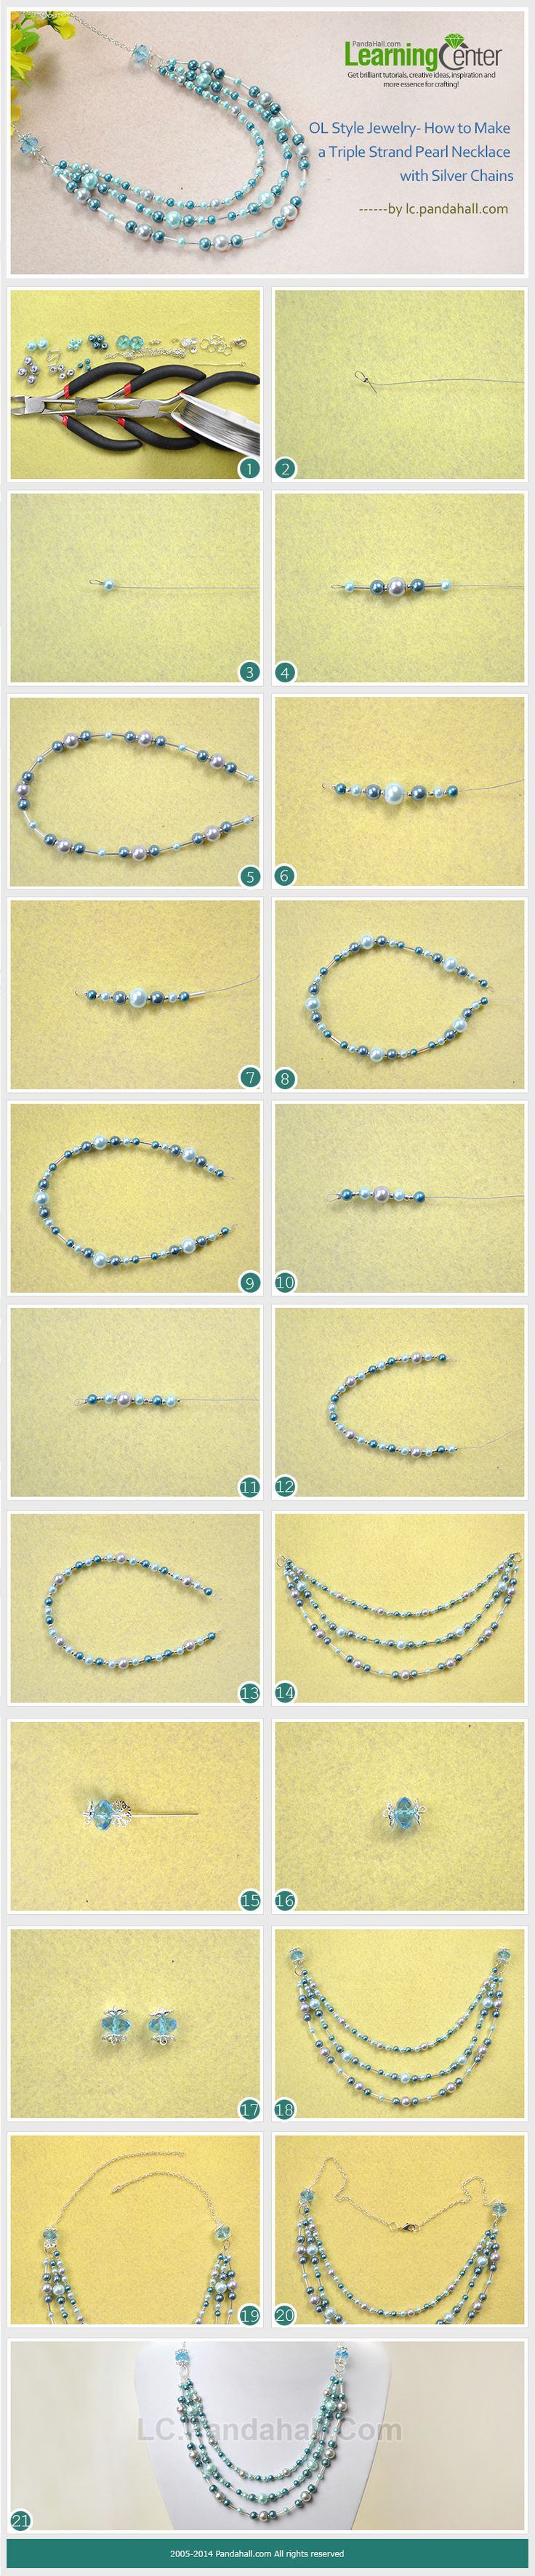 OL Style Jewelry- How to Make a Triple Strand Pearl Necklace with Silver Chains